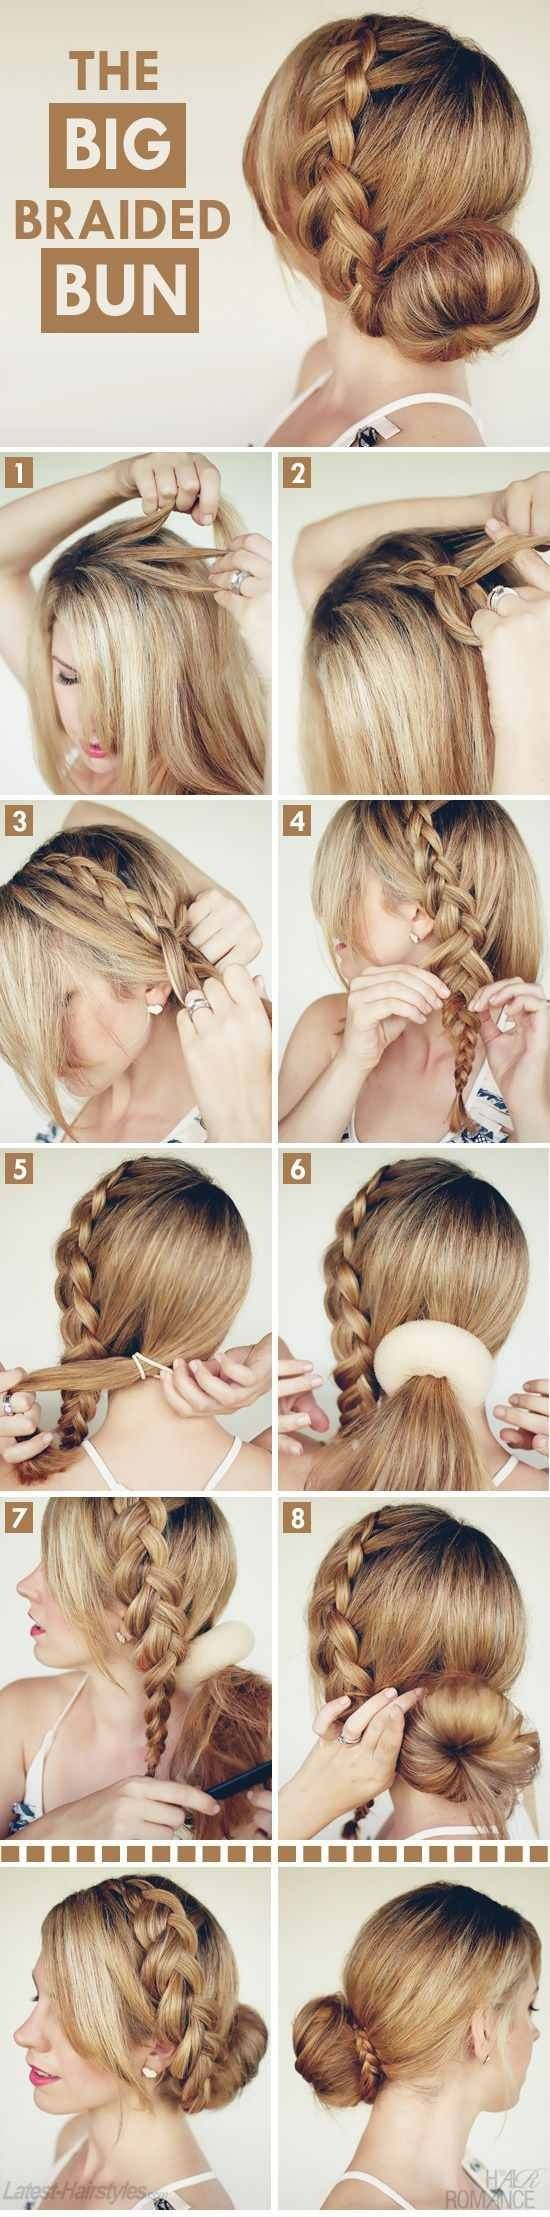 best hair art images on pinterest hair makeup hairstyle ideas